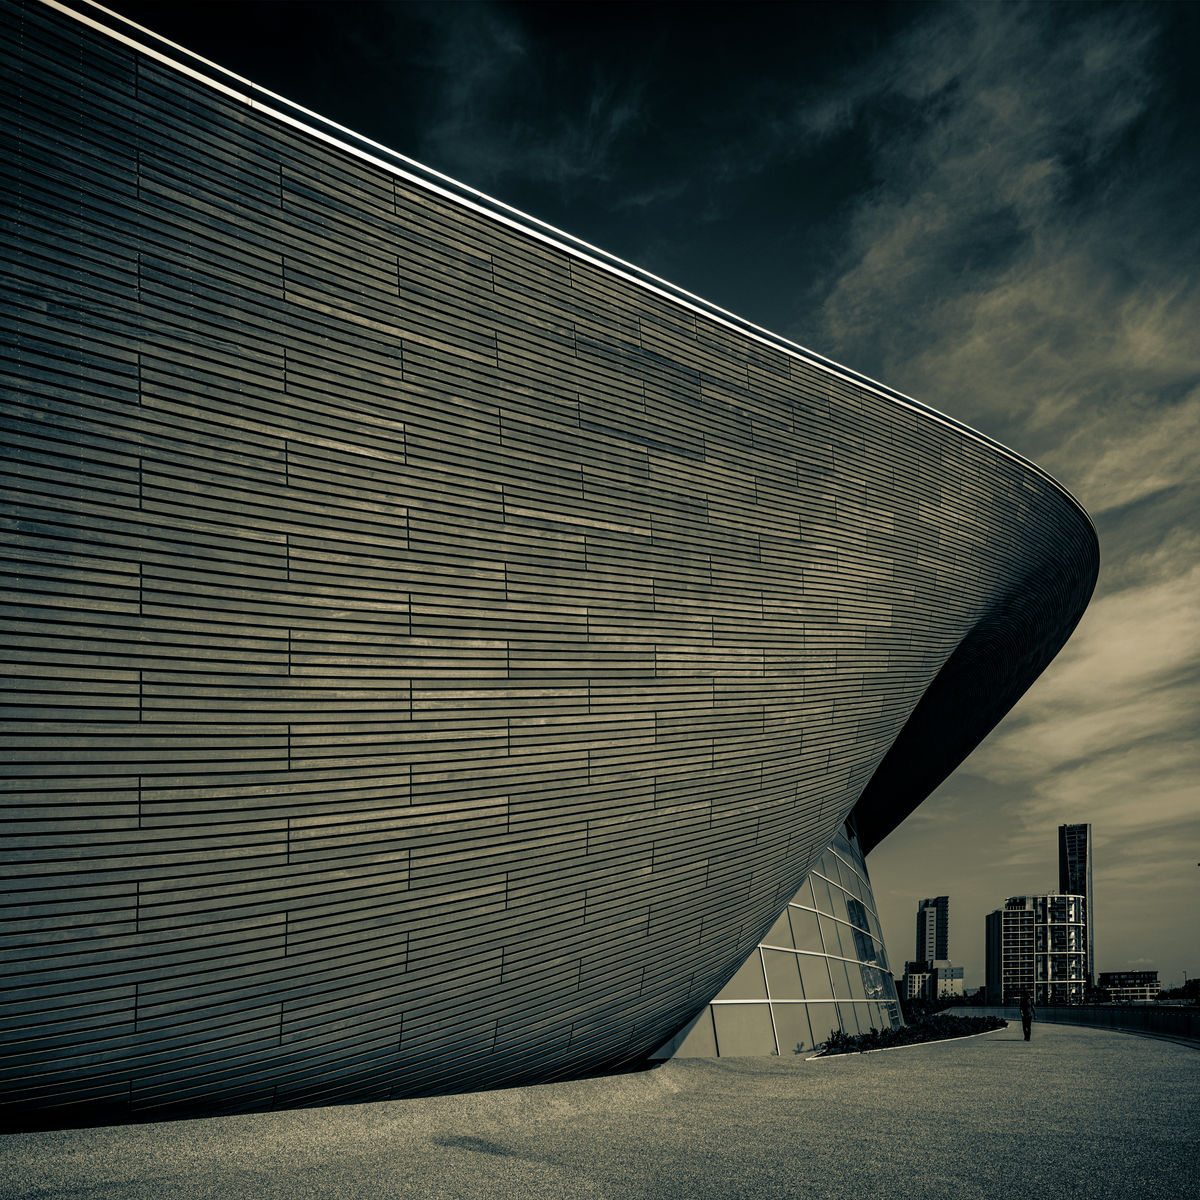 THE LONDON AQUATIC CENTRE